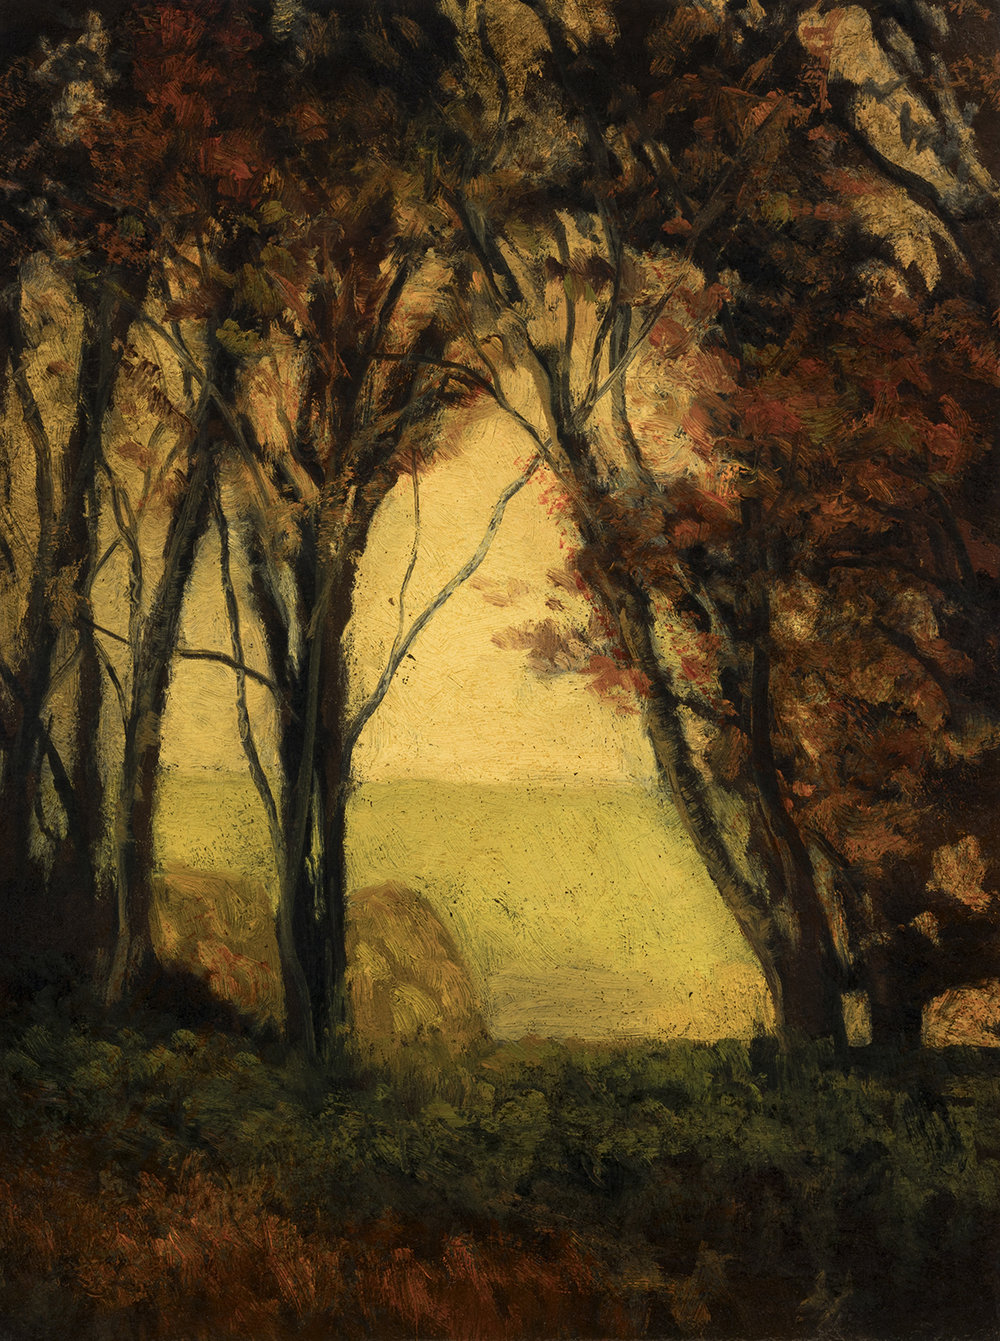 Autumn Forest by M Francis McCarthy - 6x8 Oil on Wood Panel